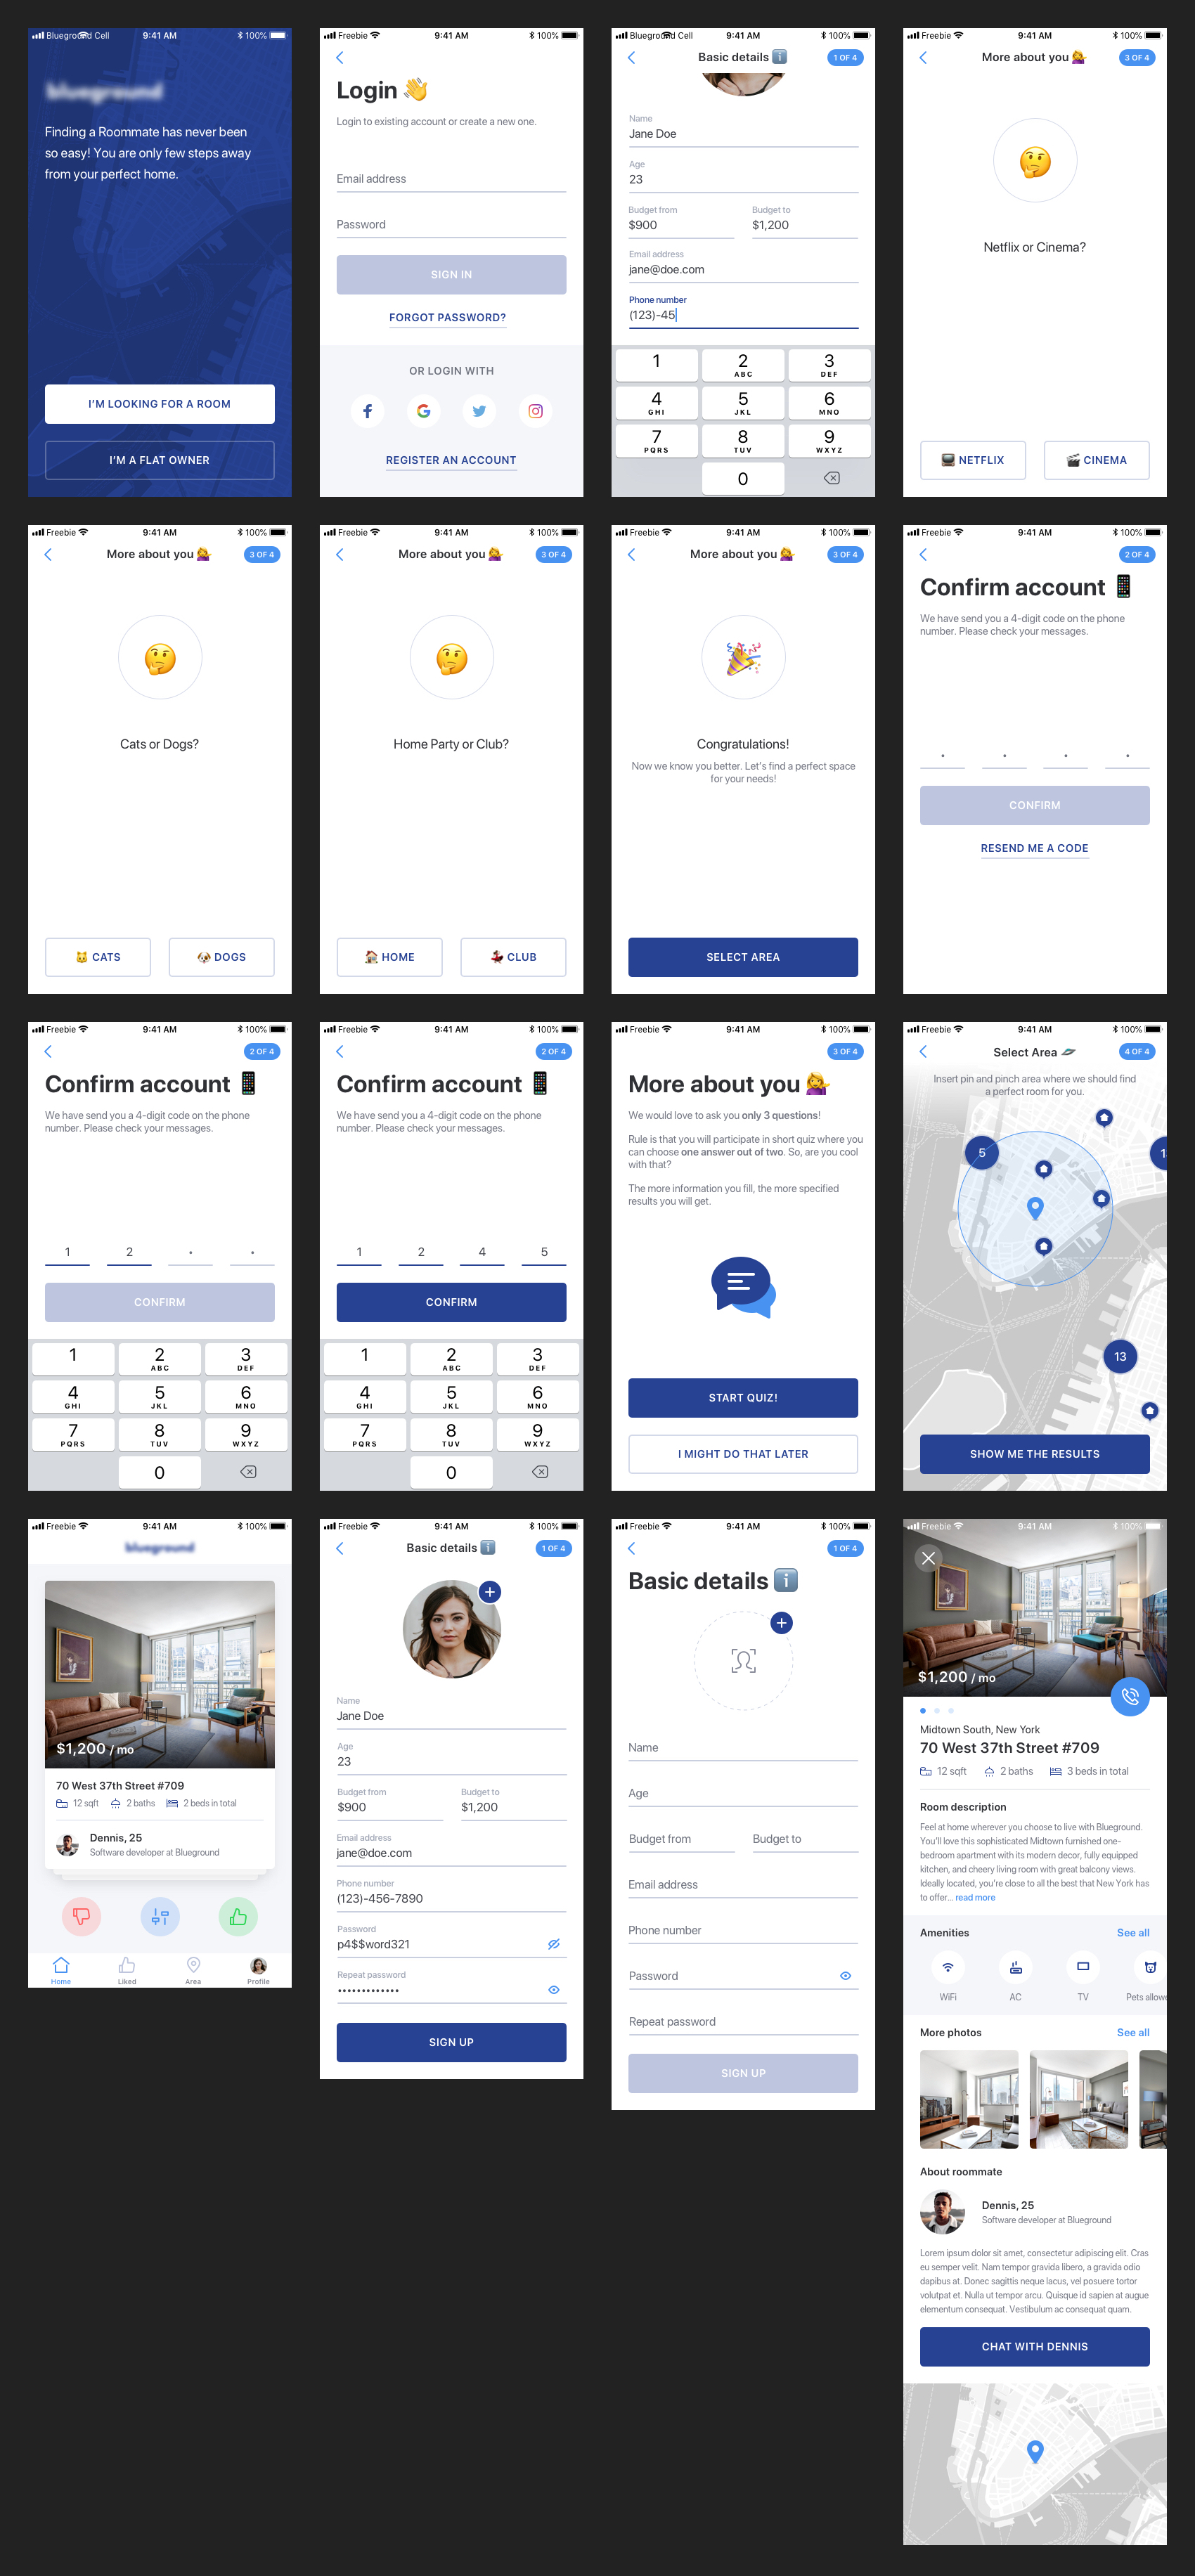 Find a Roommate Free UI Kit for Sketch - Minimal and clean app design, 16 screens for you to get started. Sketch file includes low fidelity wireframes as well. It also contains how I structure my artboards so you can quickly find a screen, make changes and adjust design.